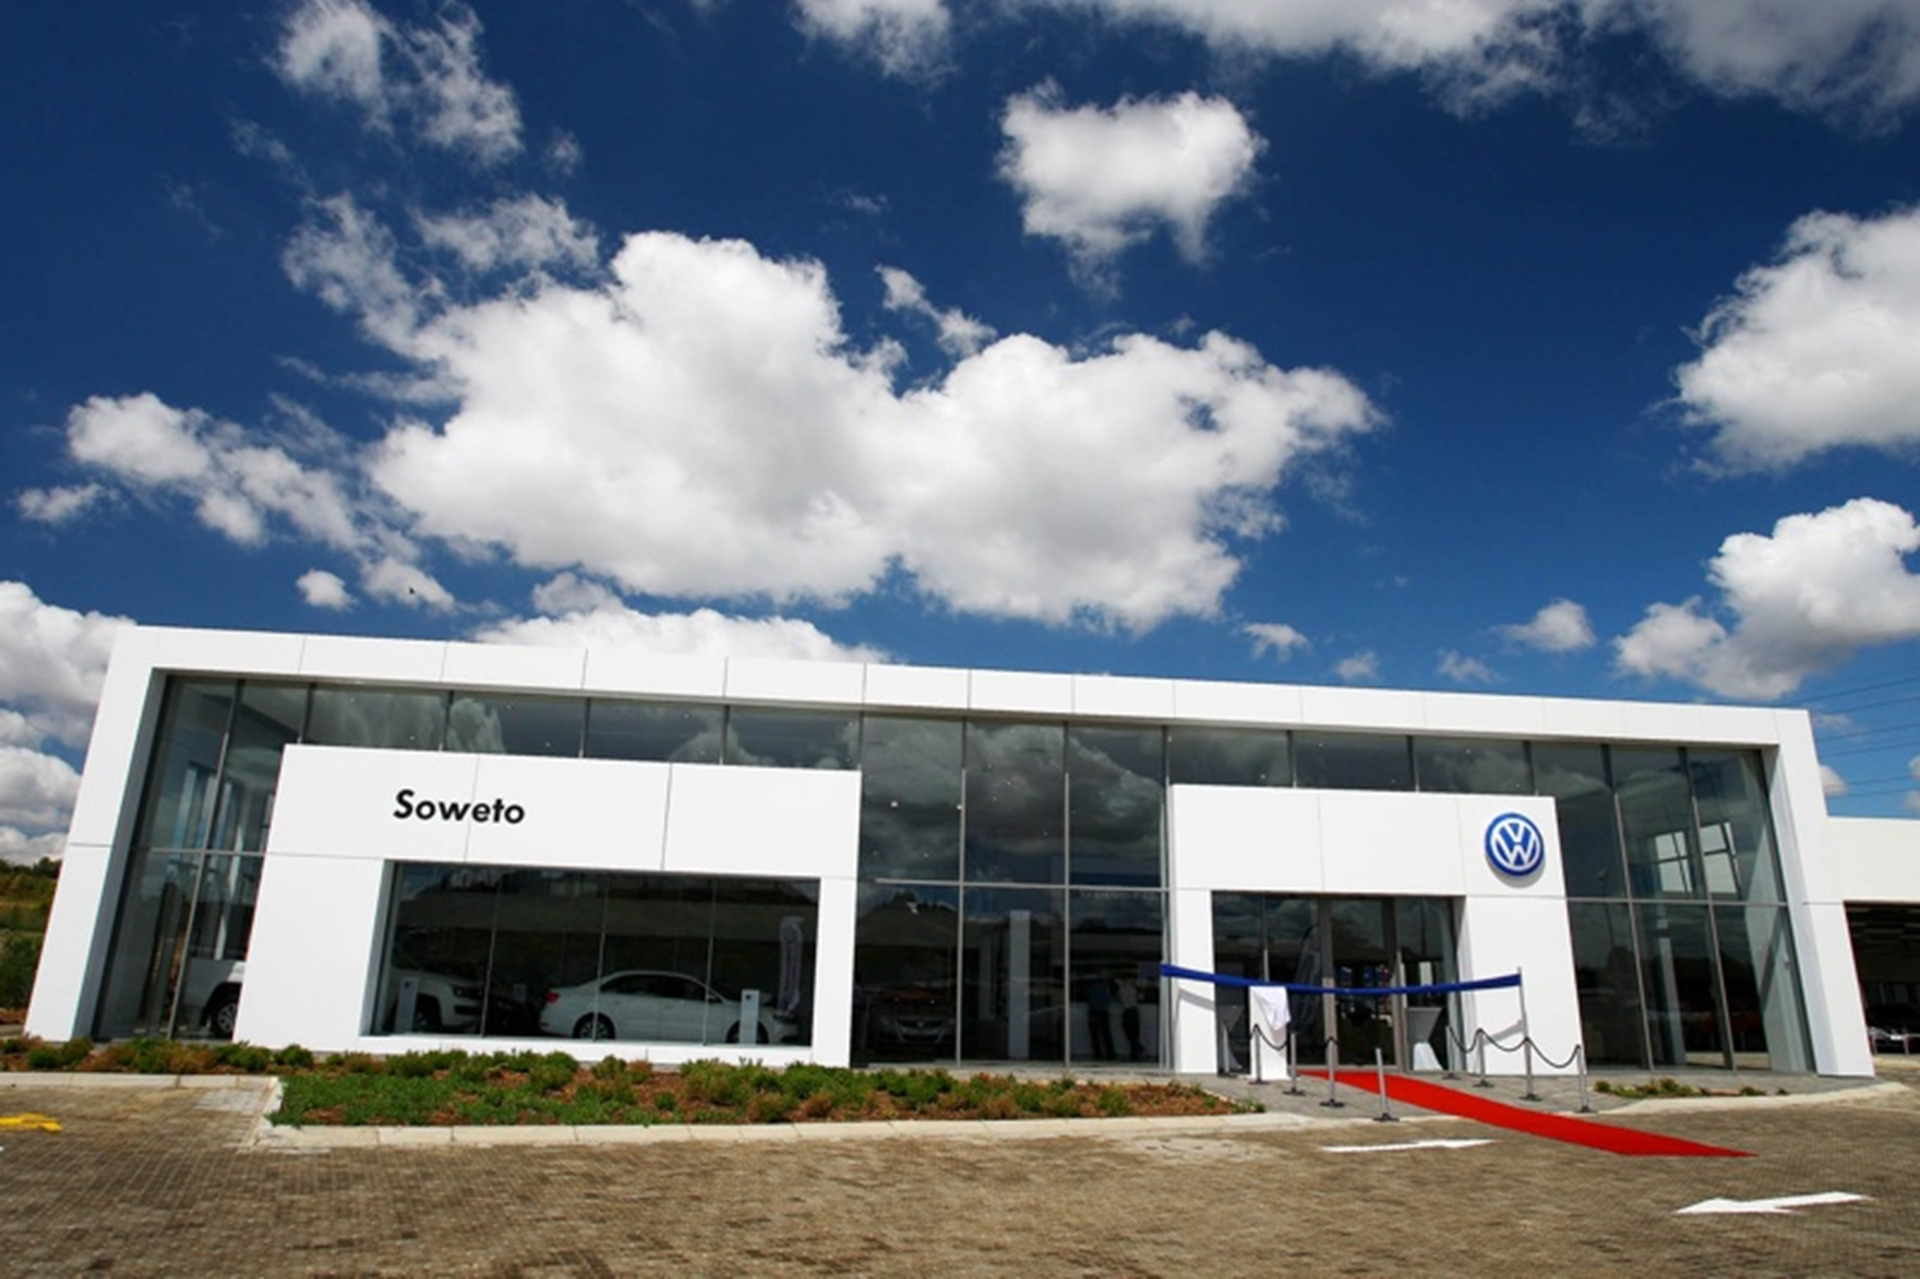 Soweto Volkswagen Dealership Officially Opened